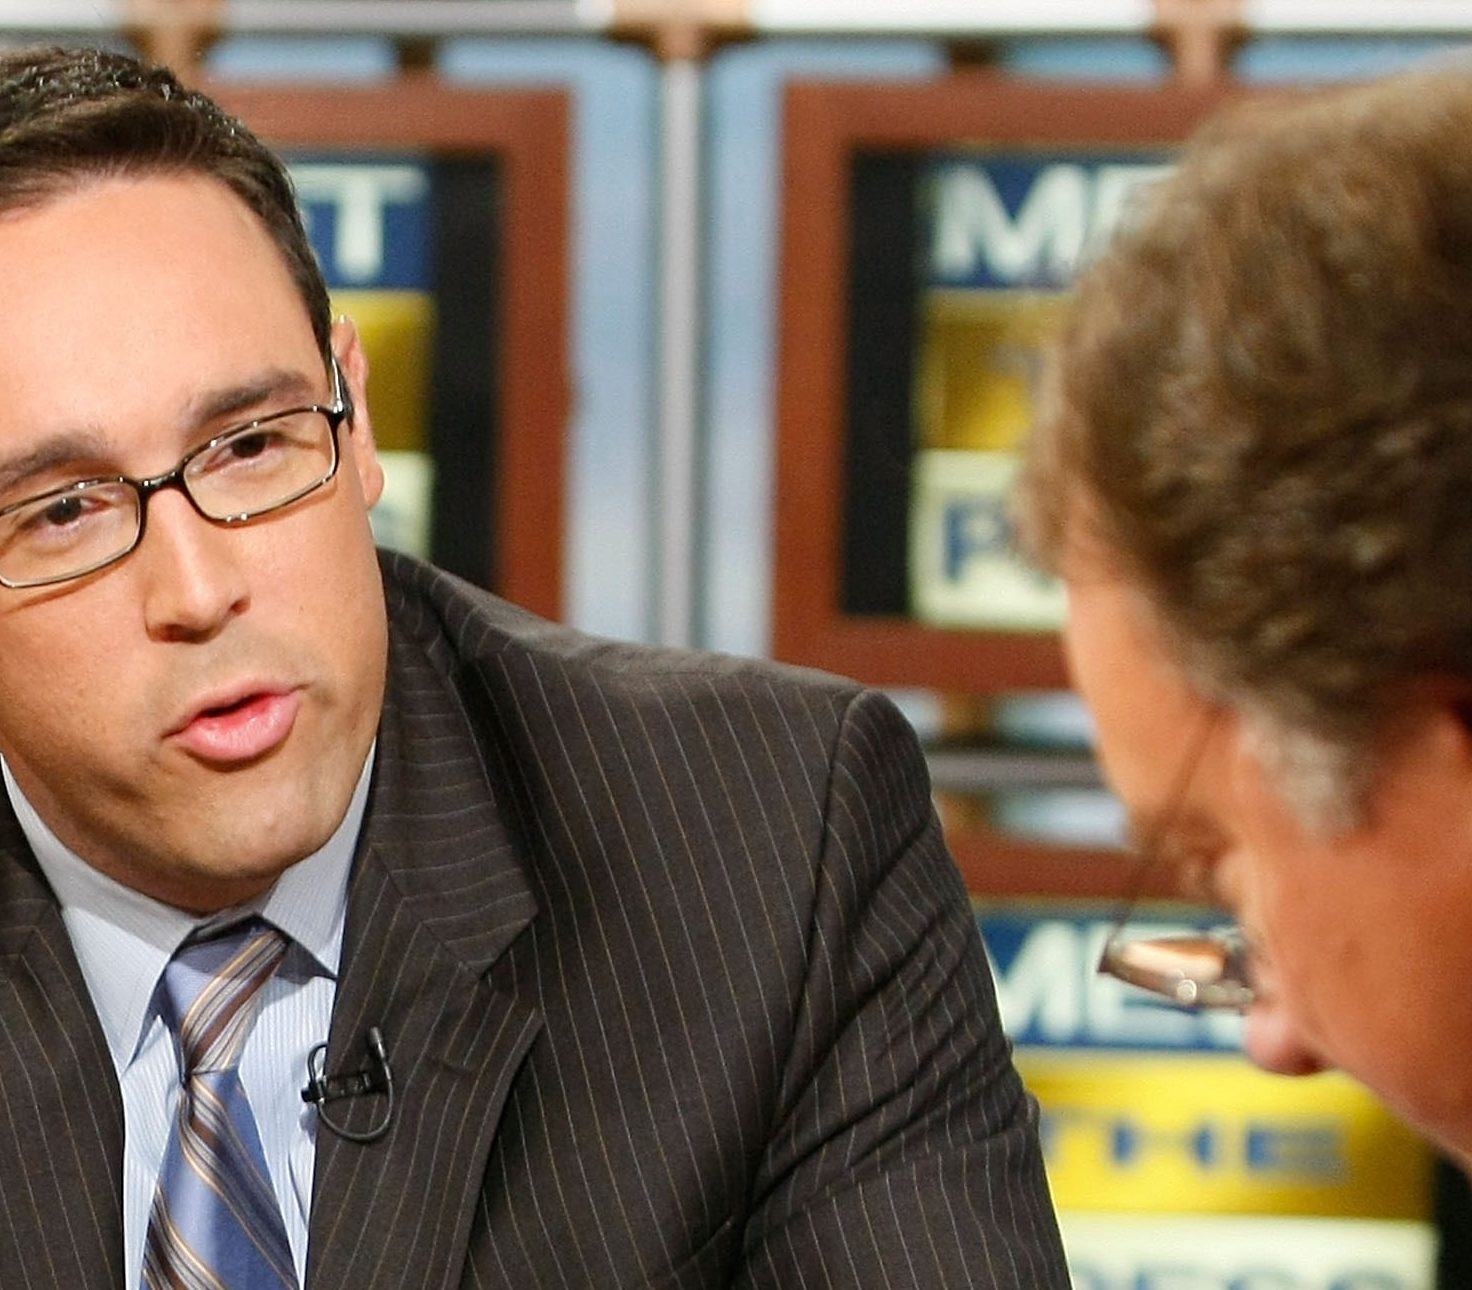 CNN Editor-at-large Chris Cillizza makes claims against President Donald Trump. (Photo by Alex Wong/Getty Images for Meet the Press)